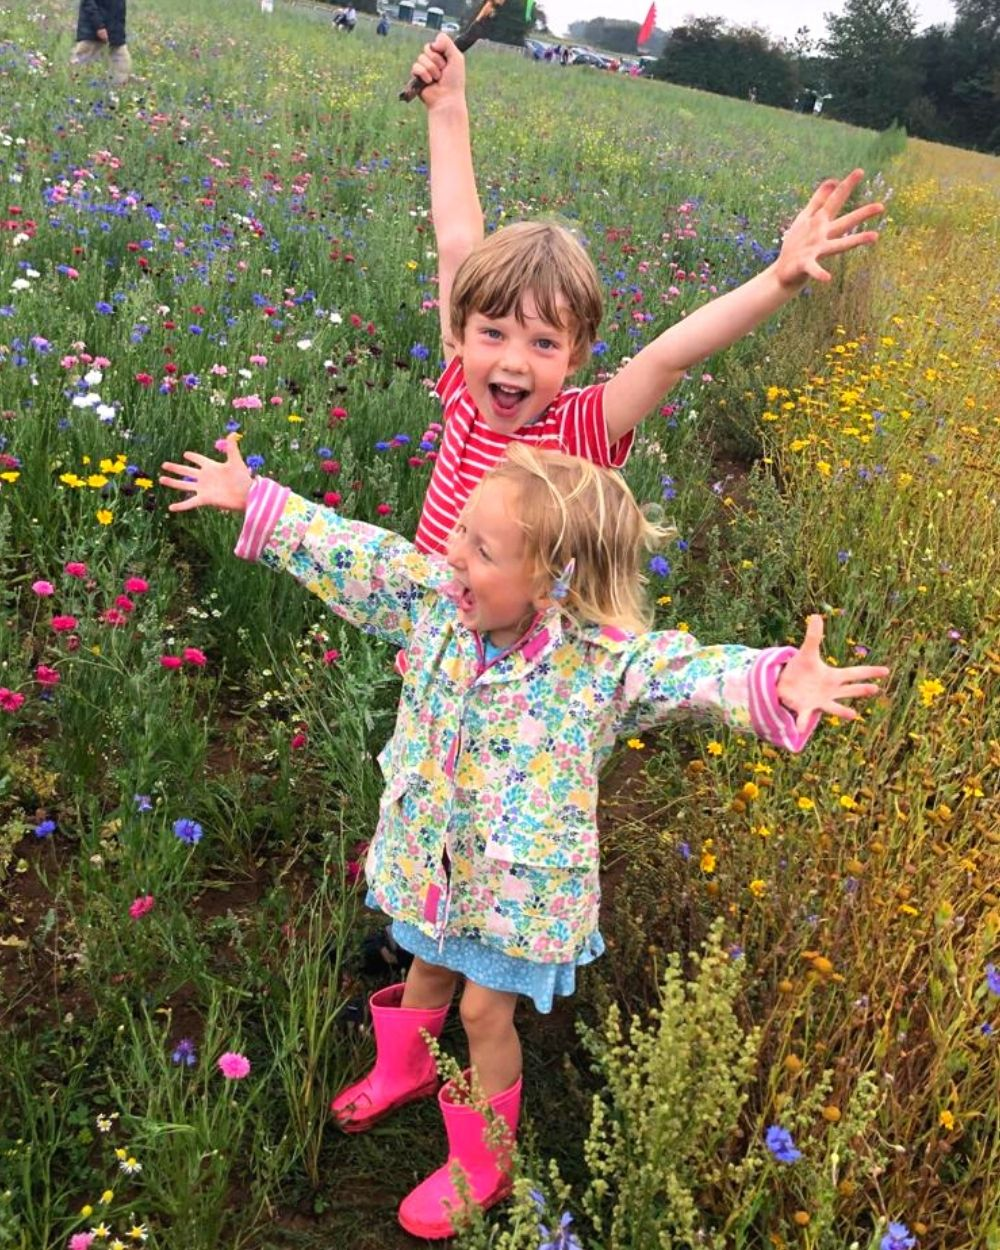 Enjoying the wildflowers in The Confetti Flower Field 2020 - photo by Becky Kay